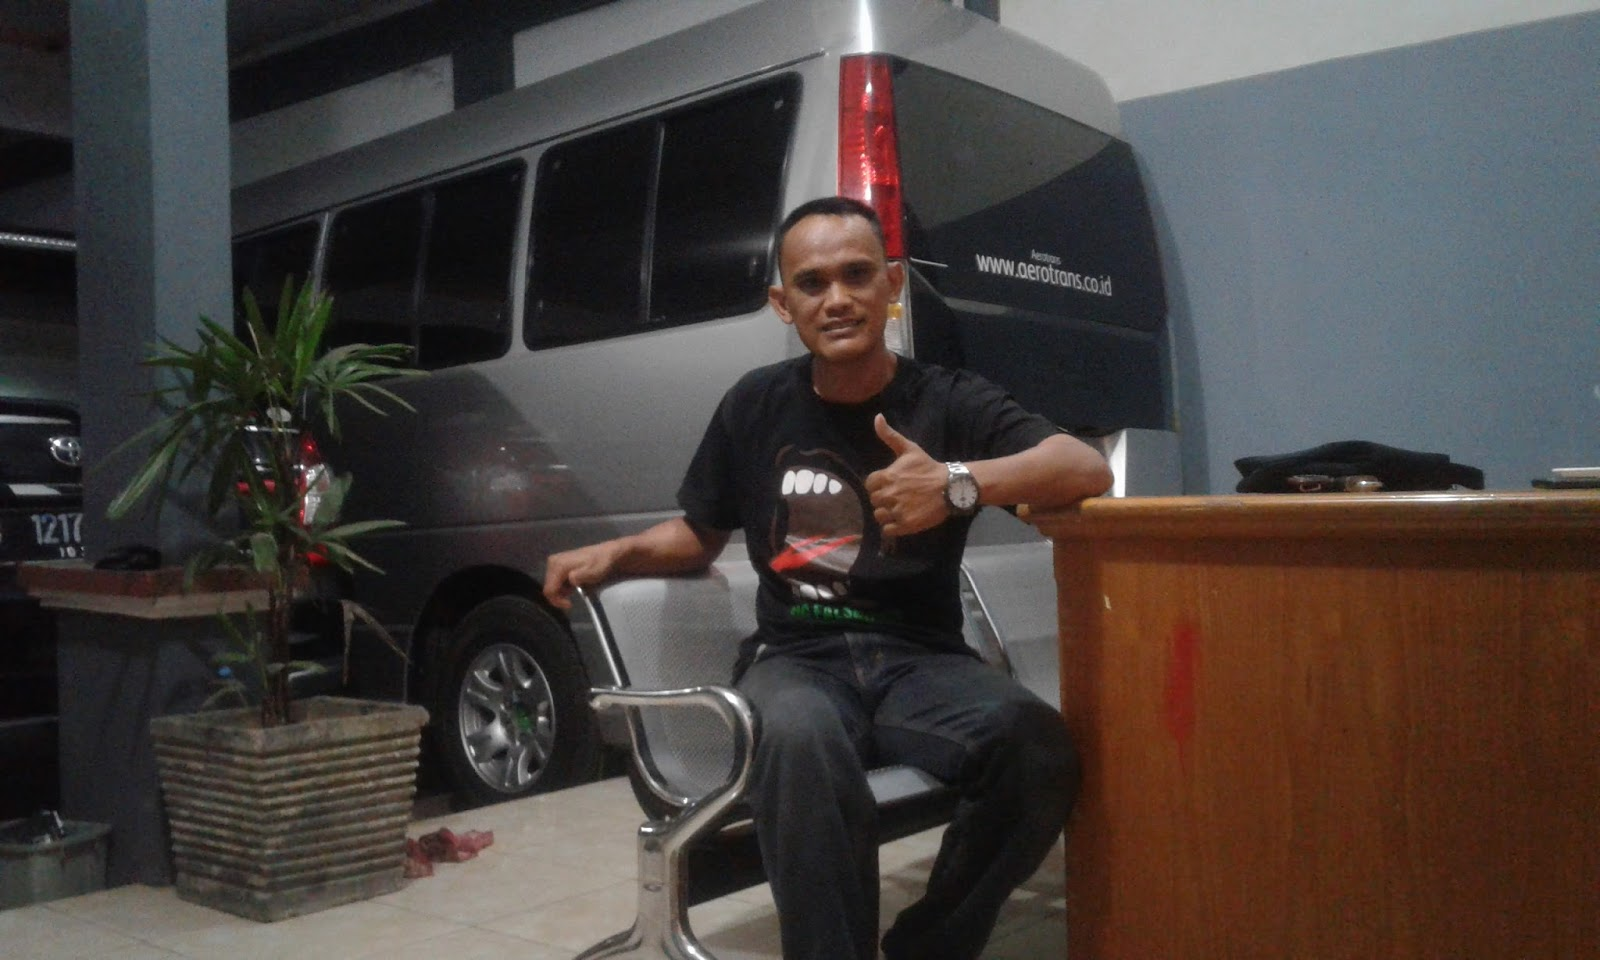 garut tour guide kang budi rental mobil dan motor harga murah di garut. Black Bedroom Furniture Sets. Home Design Ideas